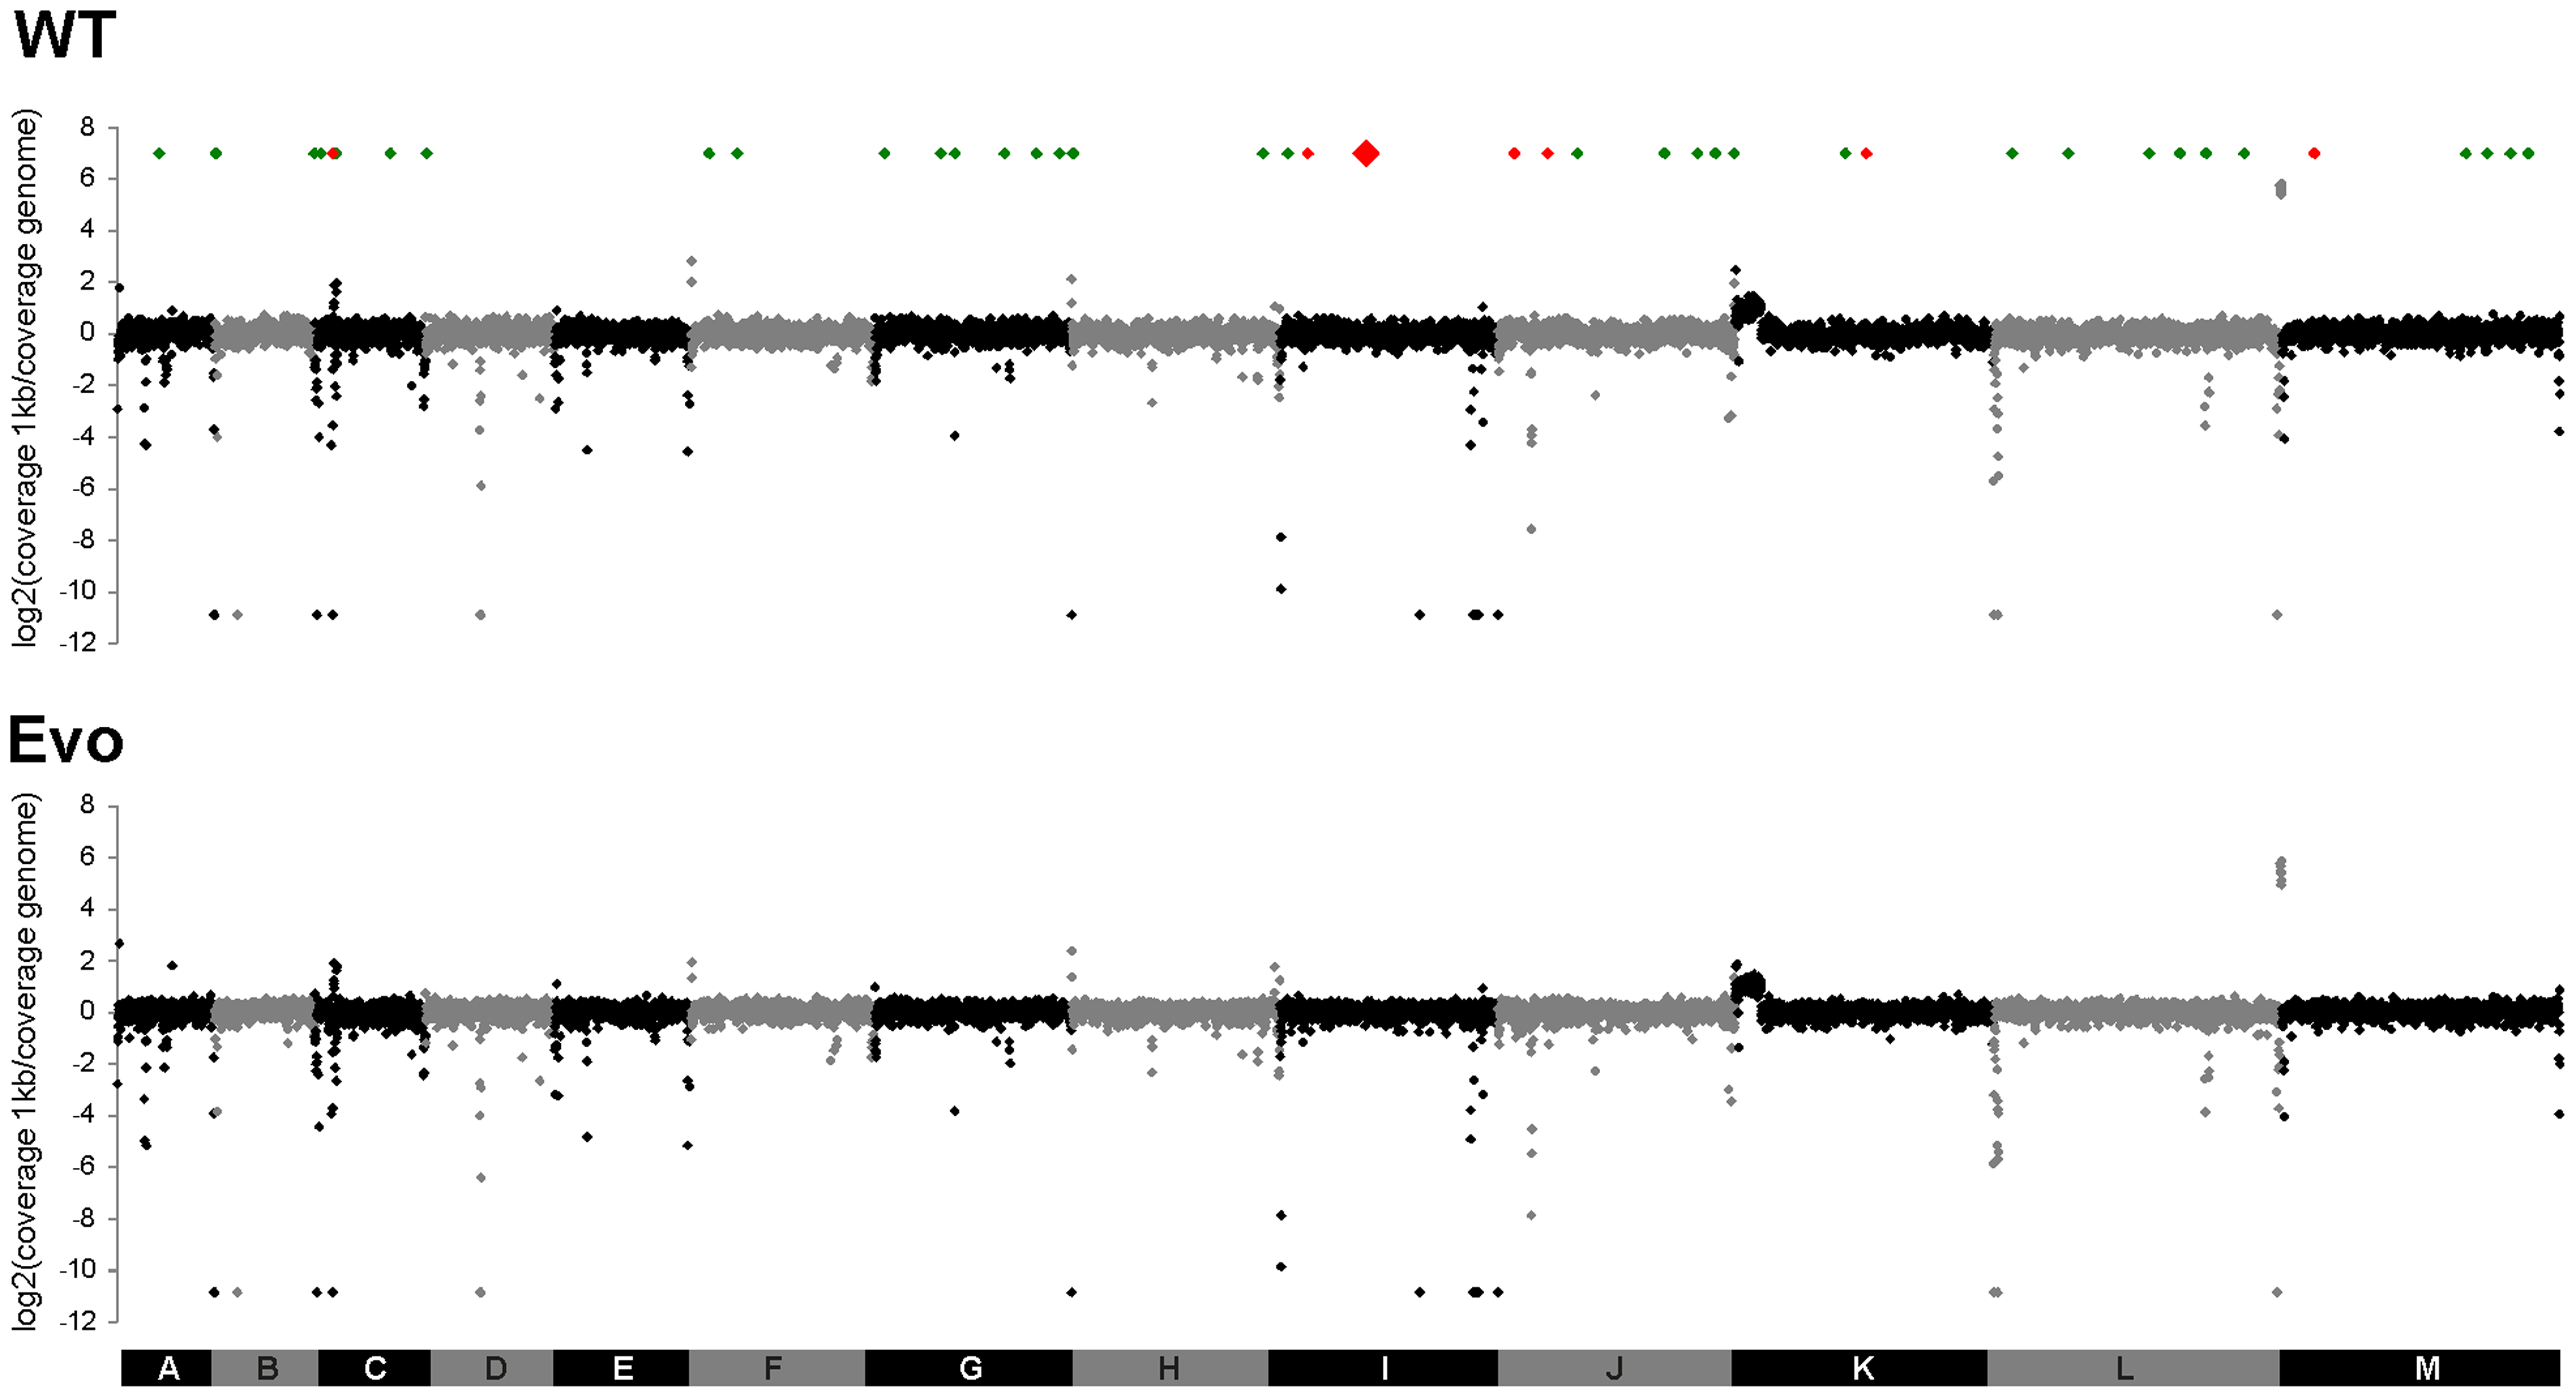 No large-scale genomic changes, but single SNP differences can be detected between WT and Evo strains.